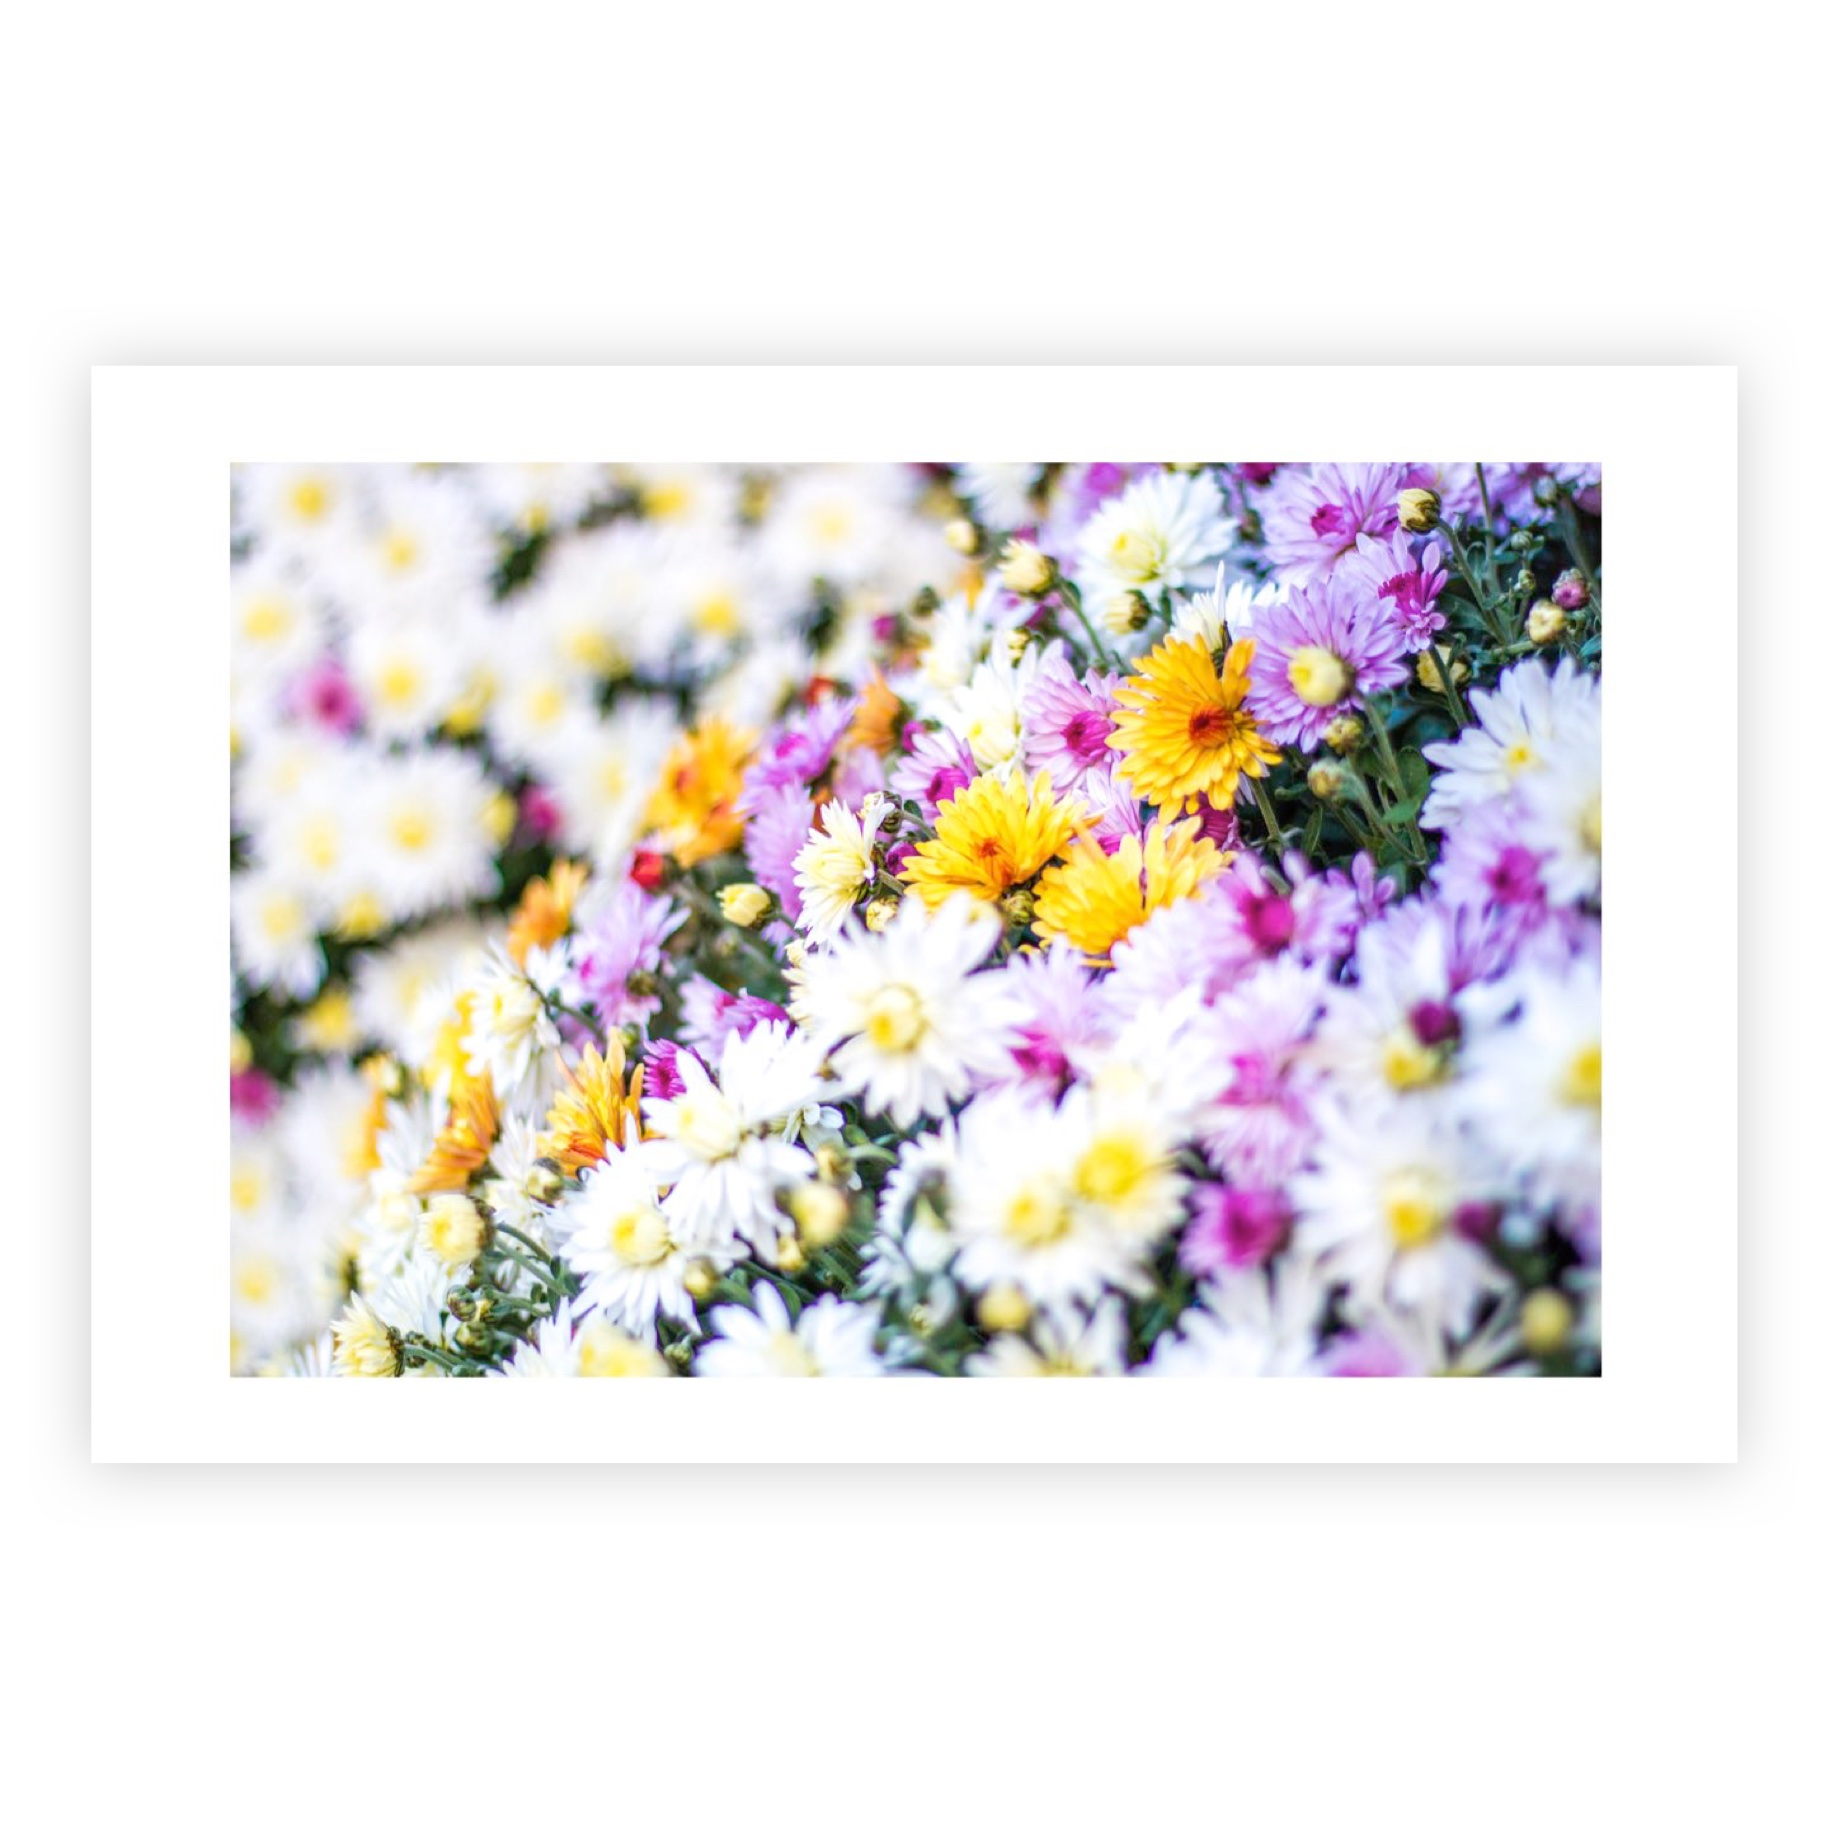 CHRYSANTHEMUM BOUQUET LMITED EDITION PRINT